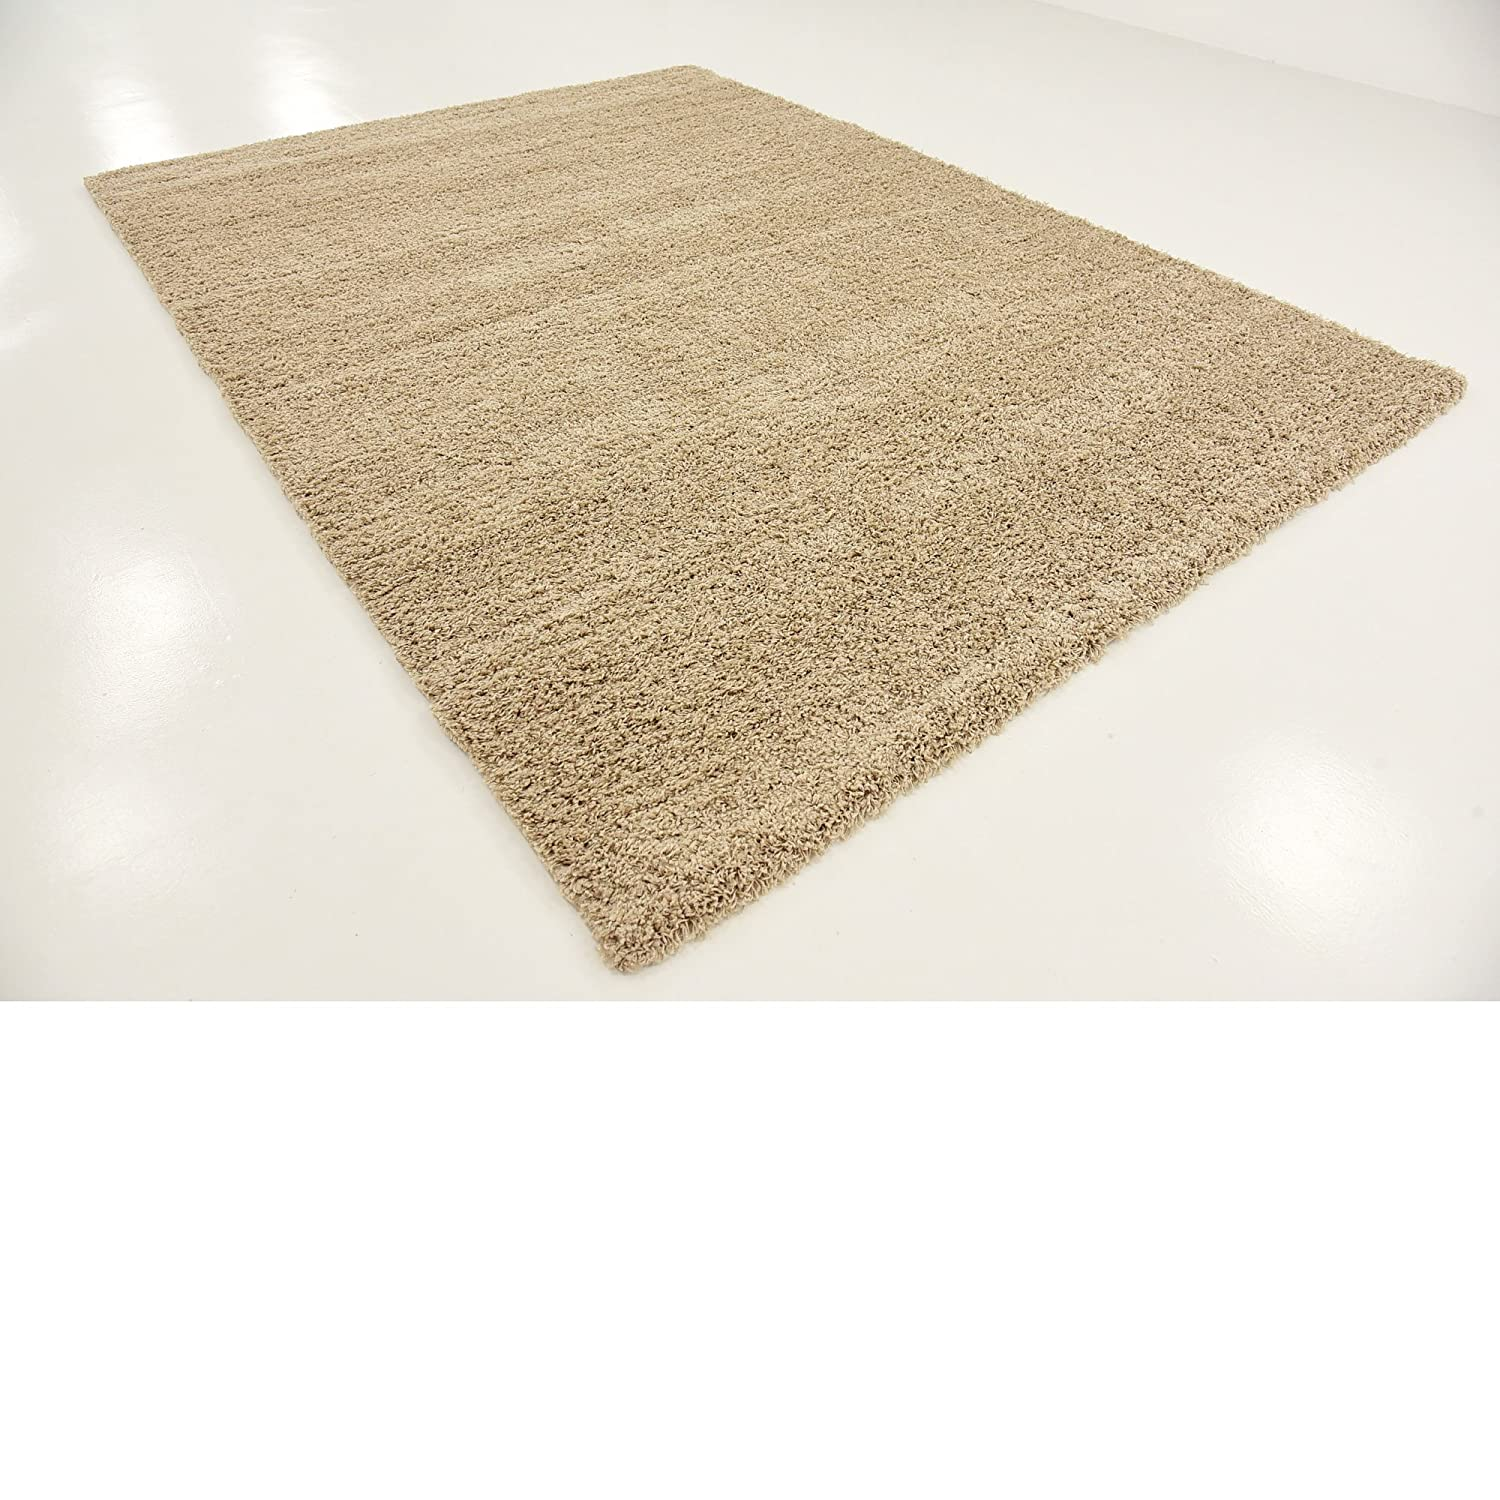 A2z Rug Cozy Shaggy Collection 8x11 Feet Solid Area Rug